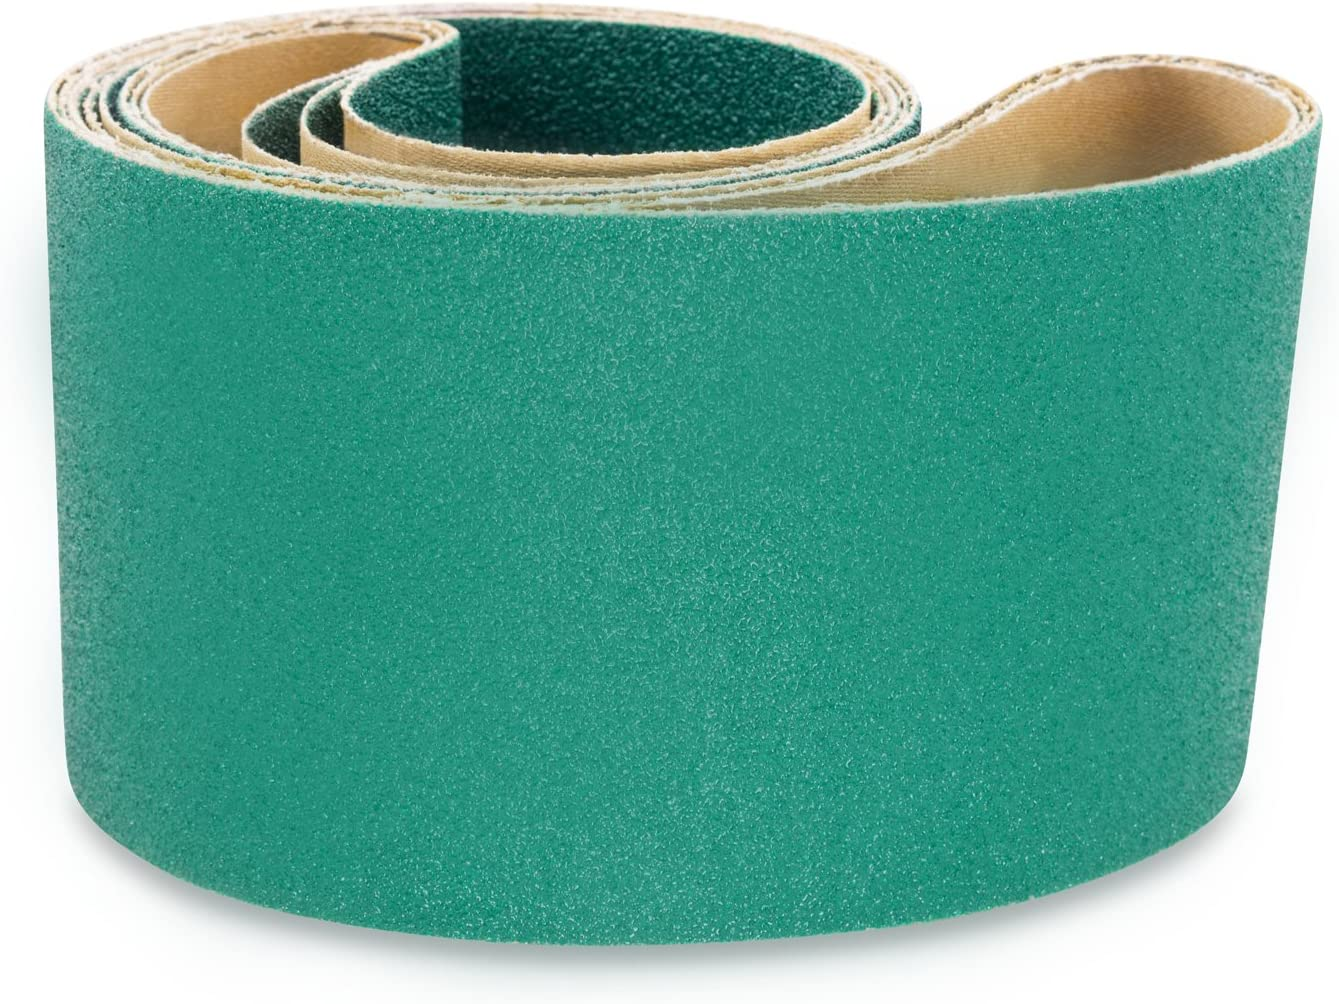 Sanding Belts 4 X 36 Zirconia Cloth Sander Belts 60 Grit 9 Pack